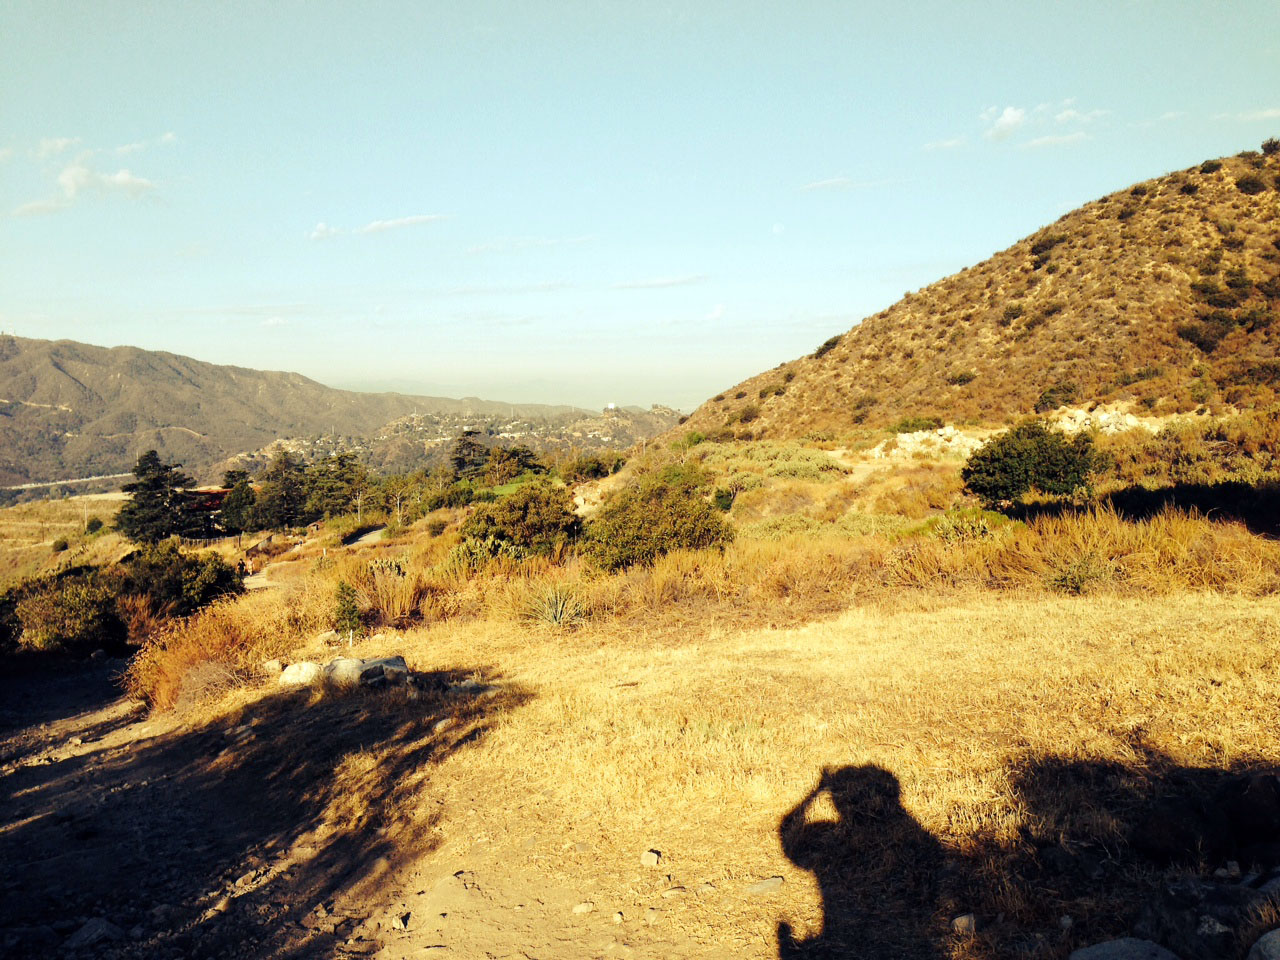 Laurie's shadow as she snaps the photo against the brown grass of the foothills on the hiking trail.